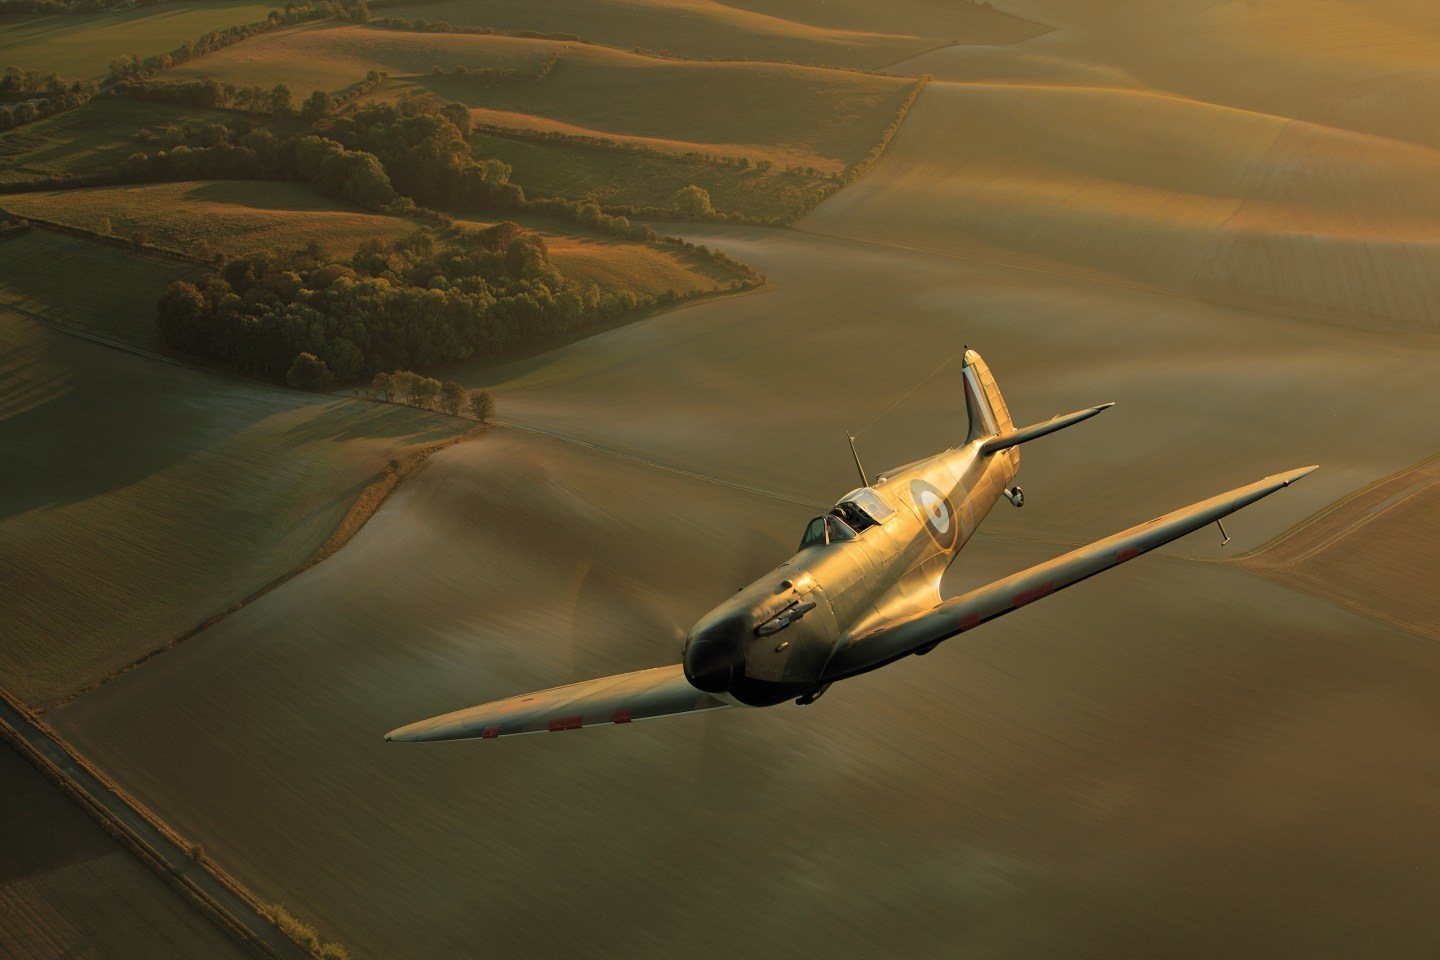 A Spitfire flying above British fields for RAFBF Storylines